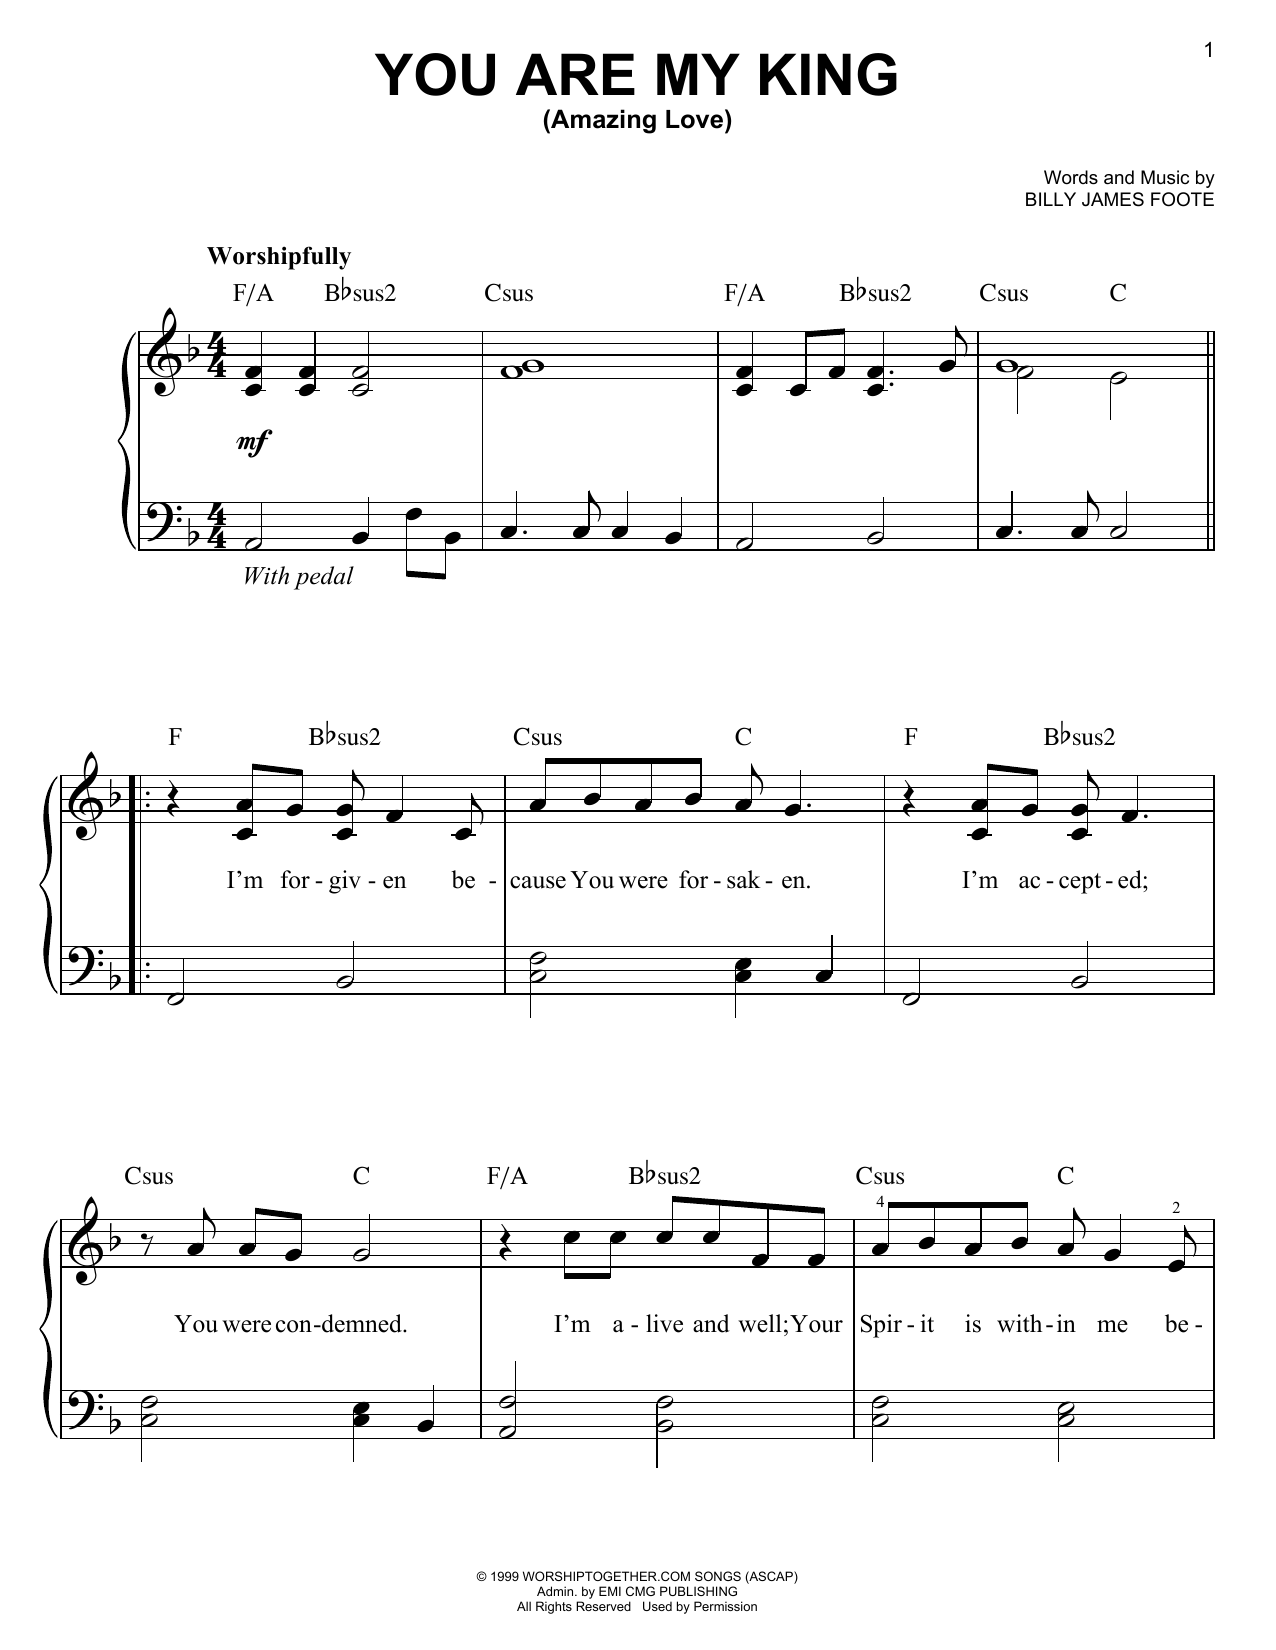 Newsboys You Are My King (Amazing Love) sheet music notes and chords